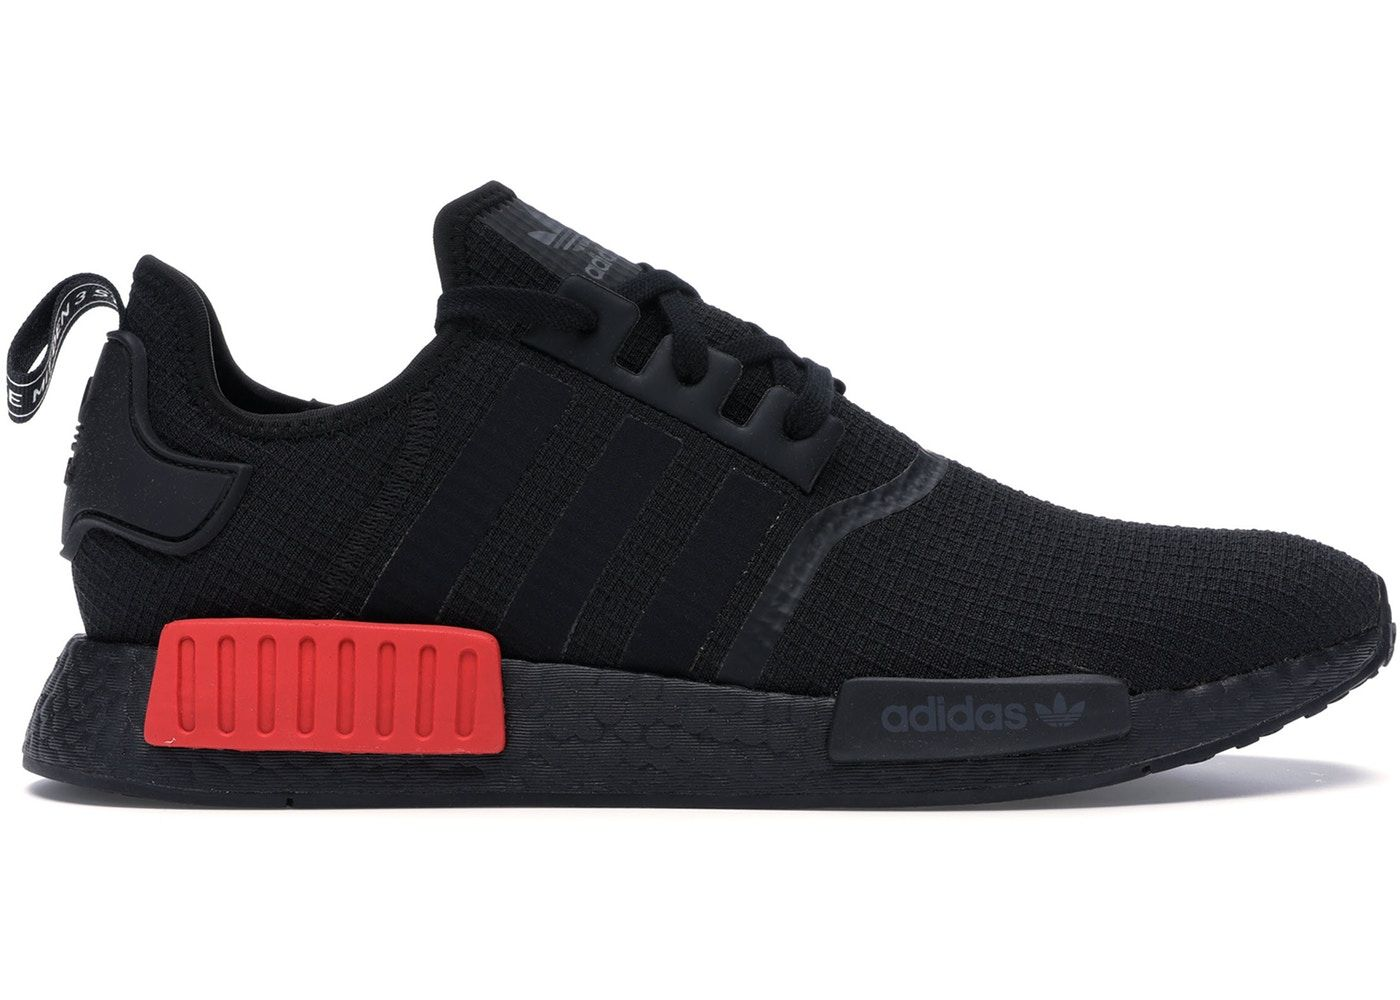 adidas nmd r1 red marble The Adidas